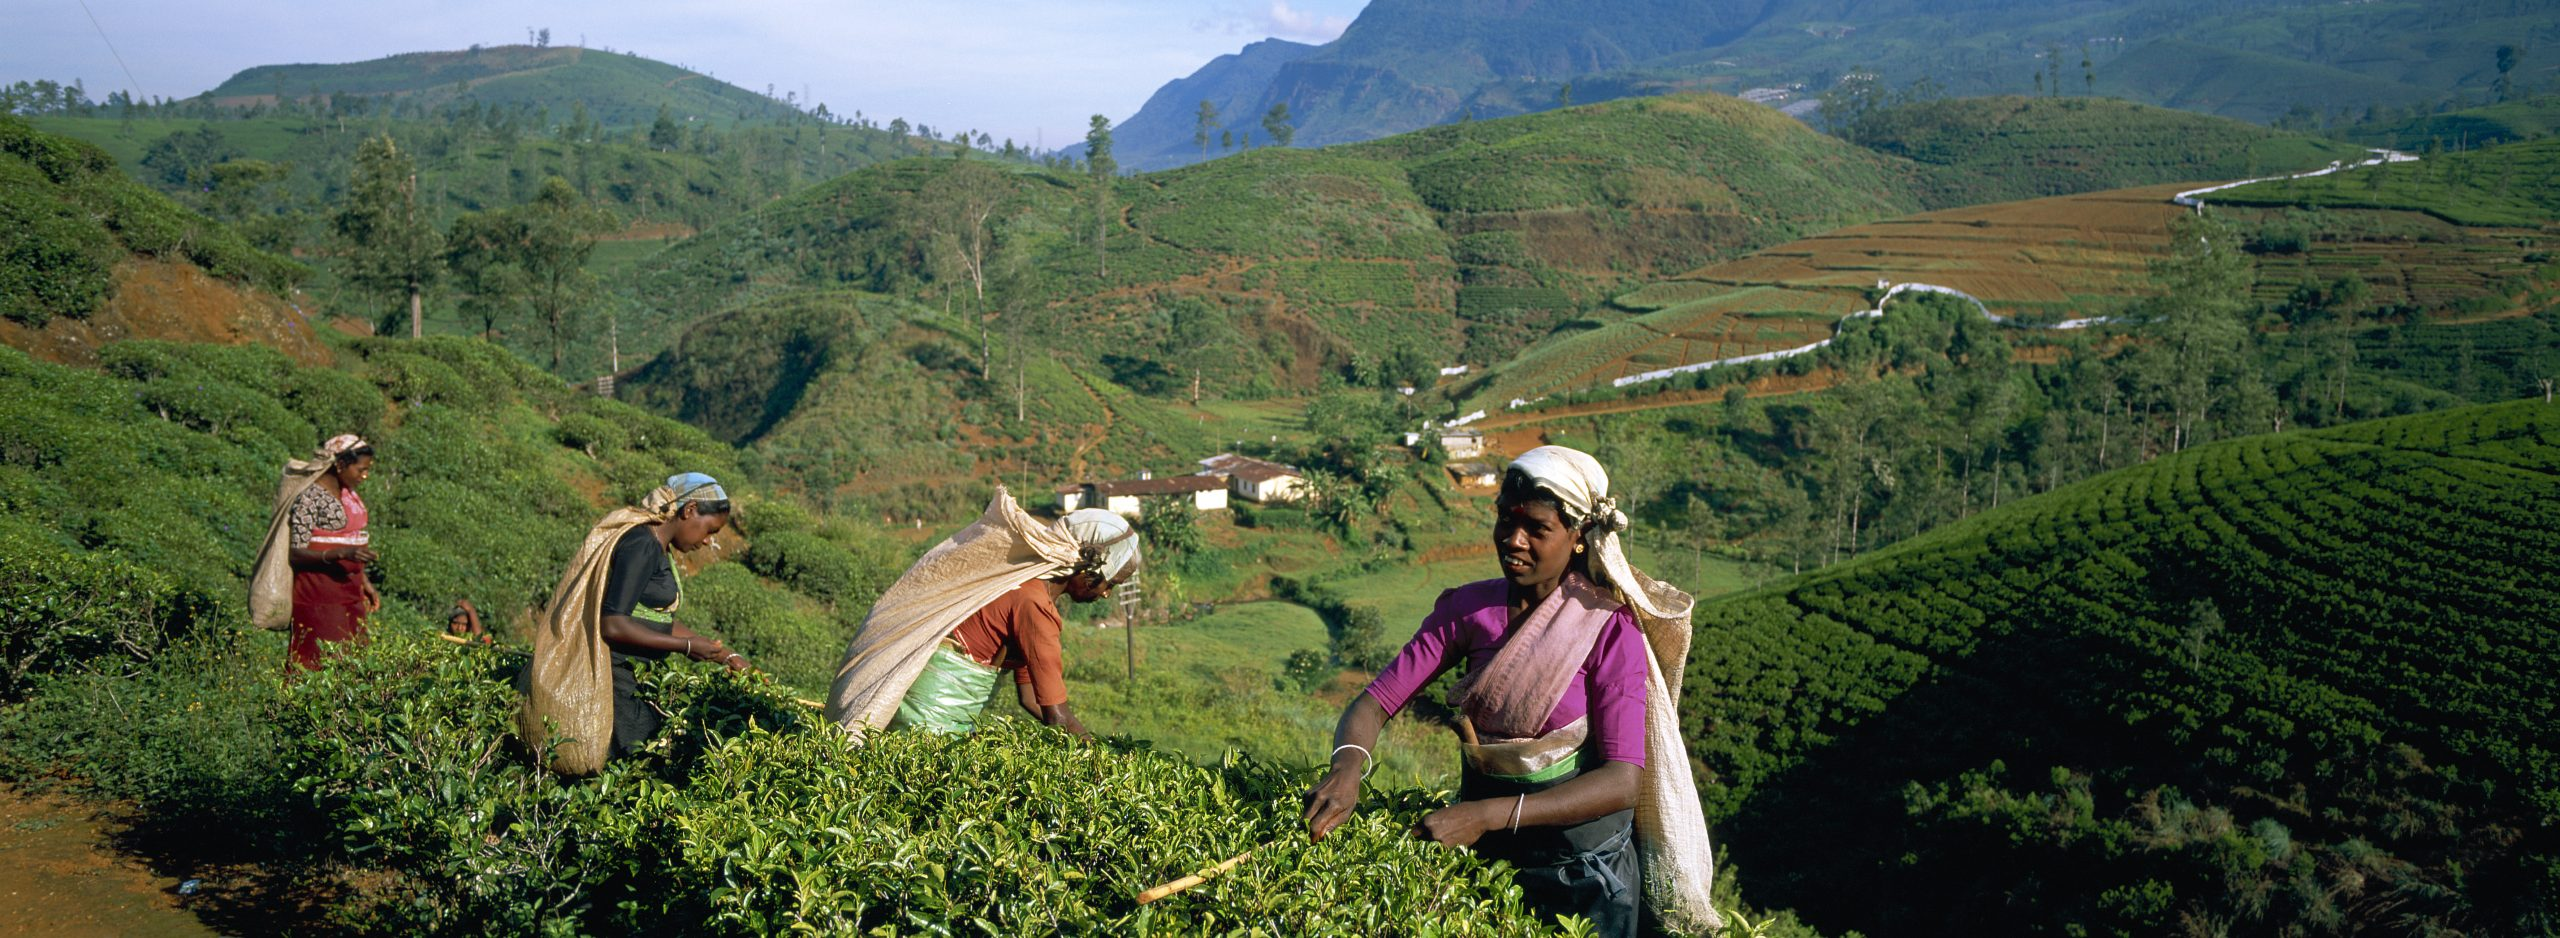 Tea harvest - Tea collect - Nuwara Eliya - Sri Lanka